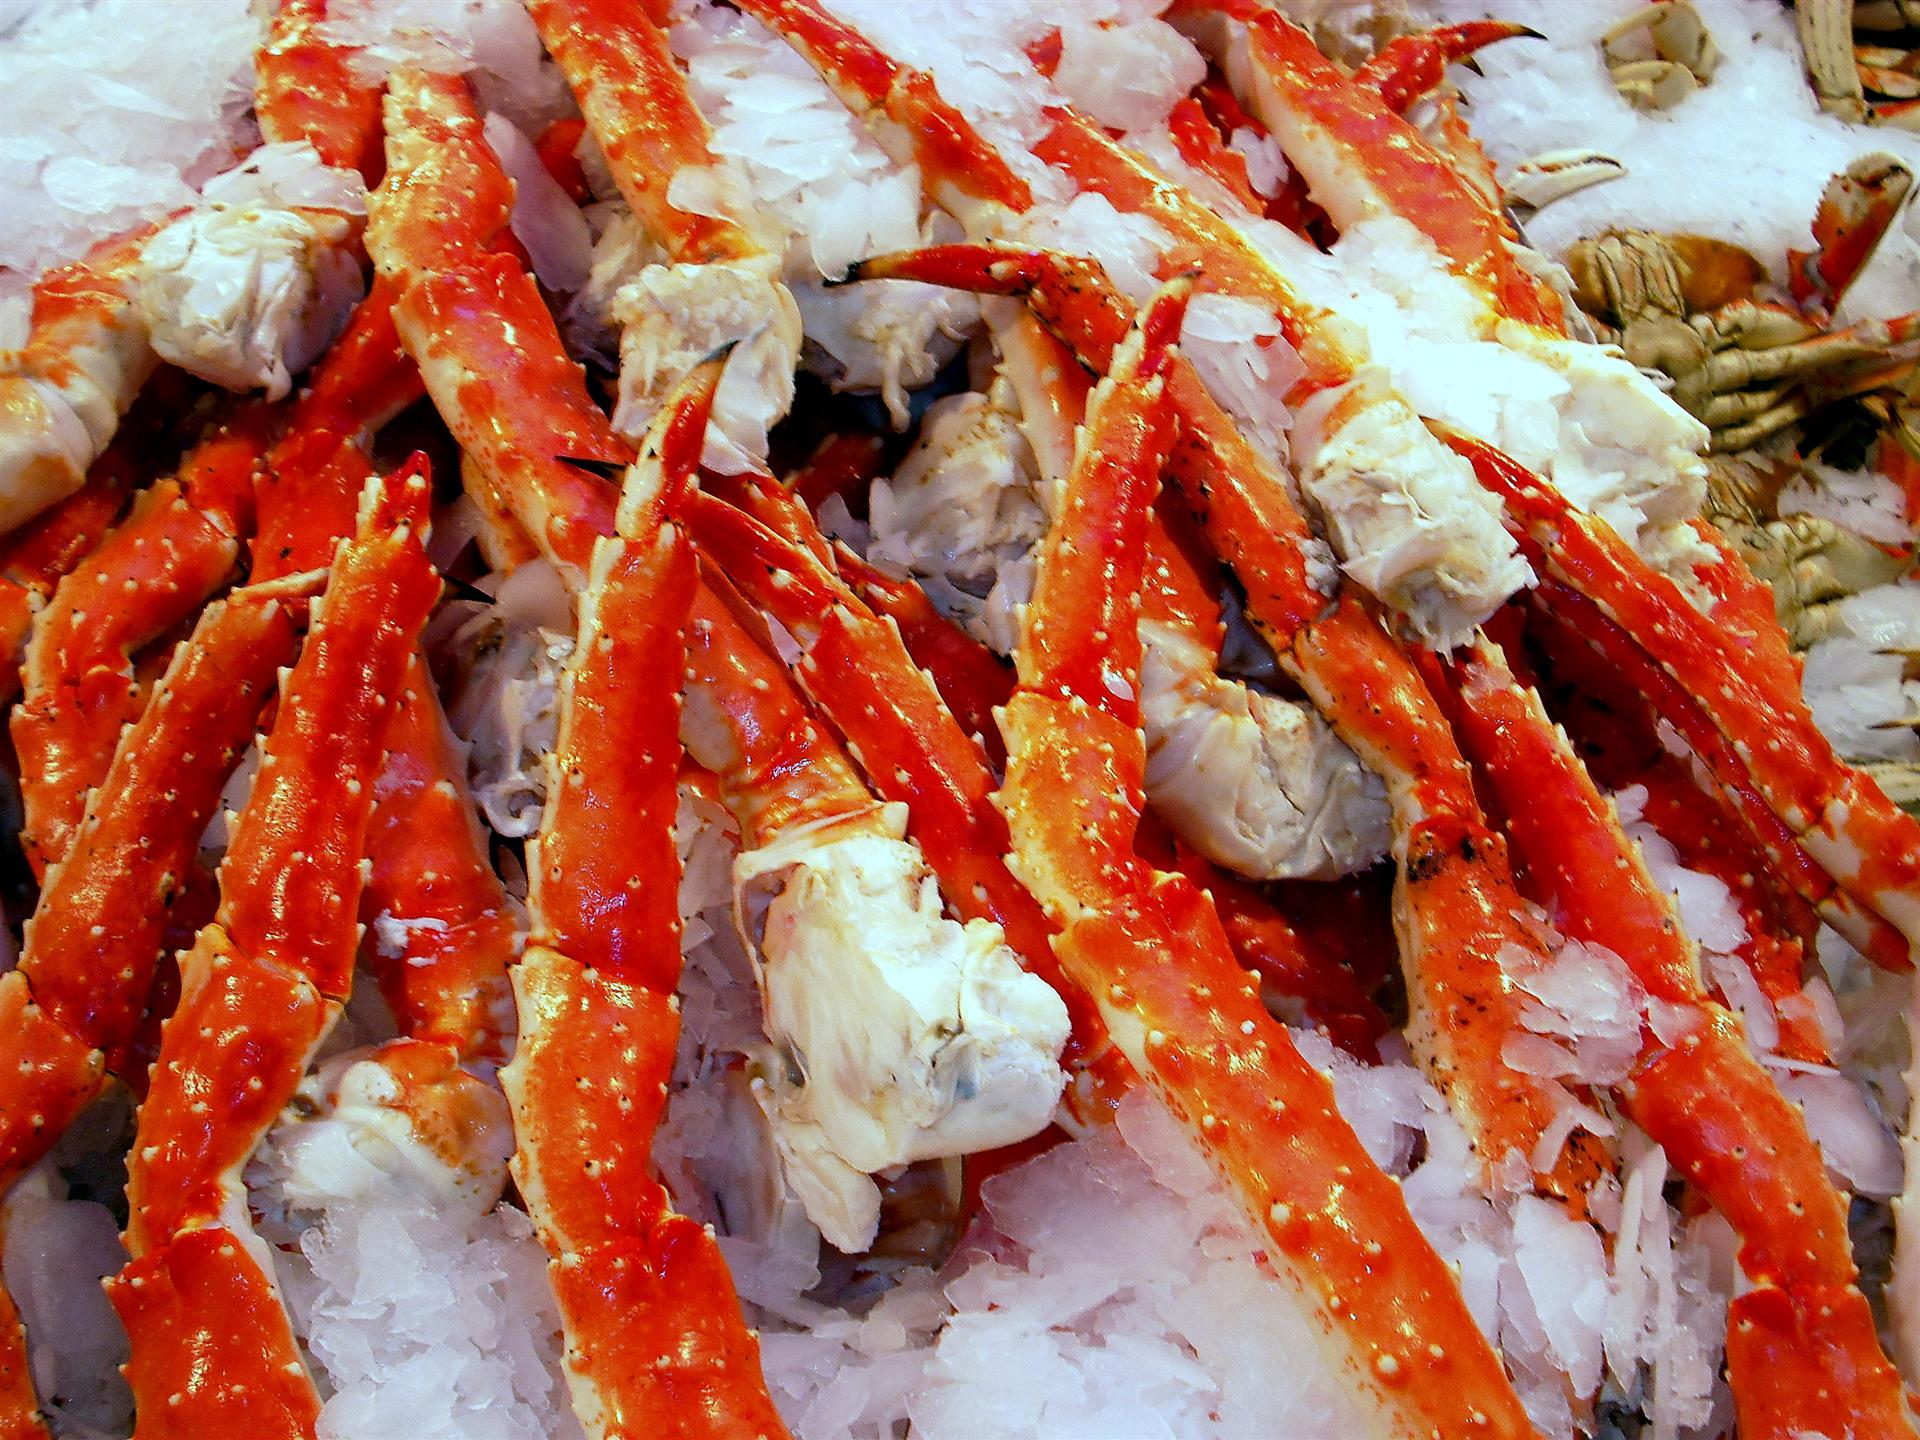 Wednesday - All YouCan Eat Crab Legs